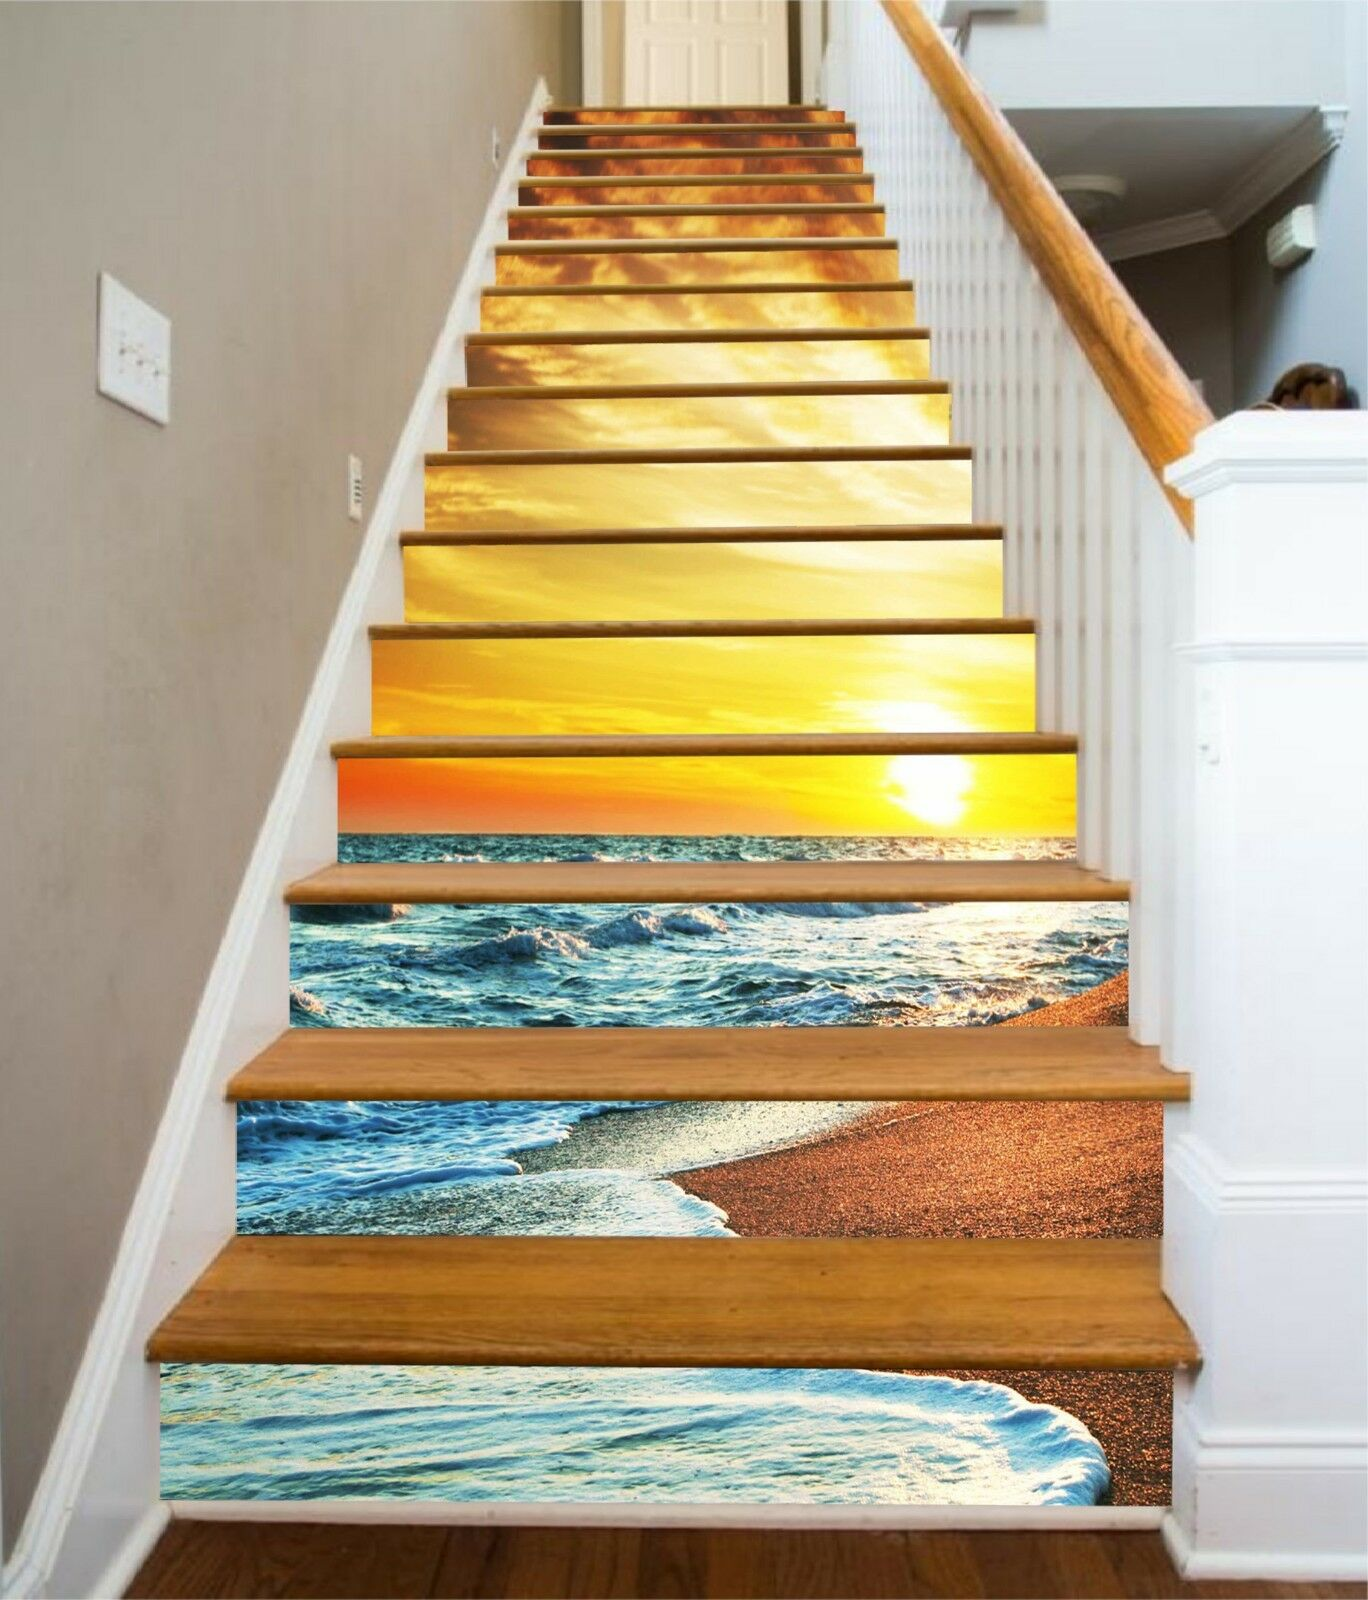 3D Sunset Sea 16 Stair Risers Decoration Photo Mural Vinyl Decal Wallpaper CA